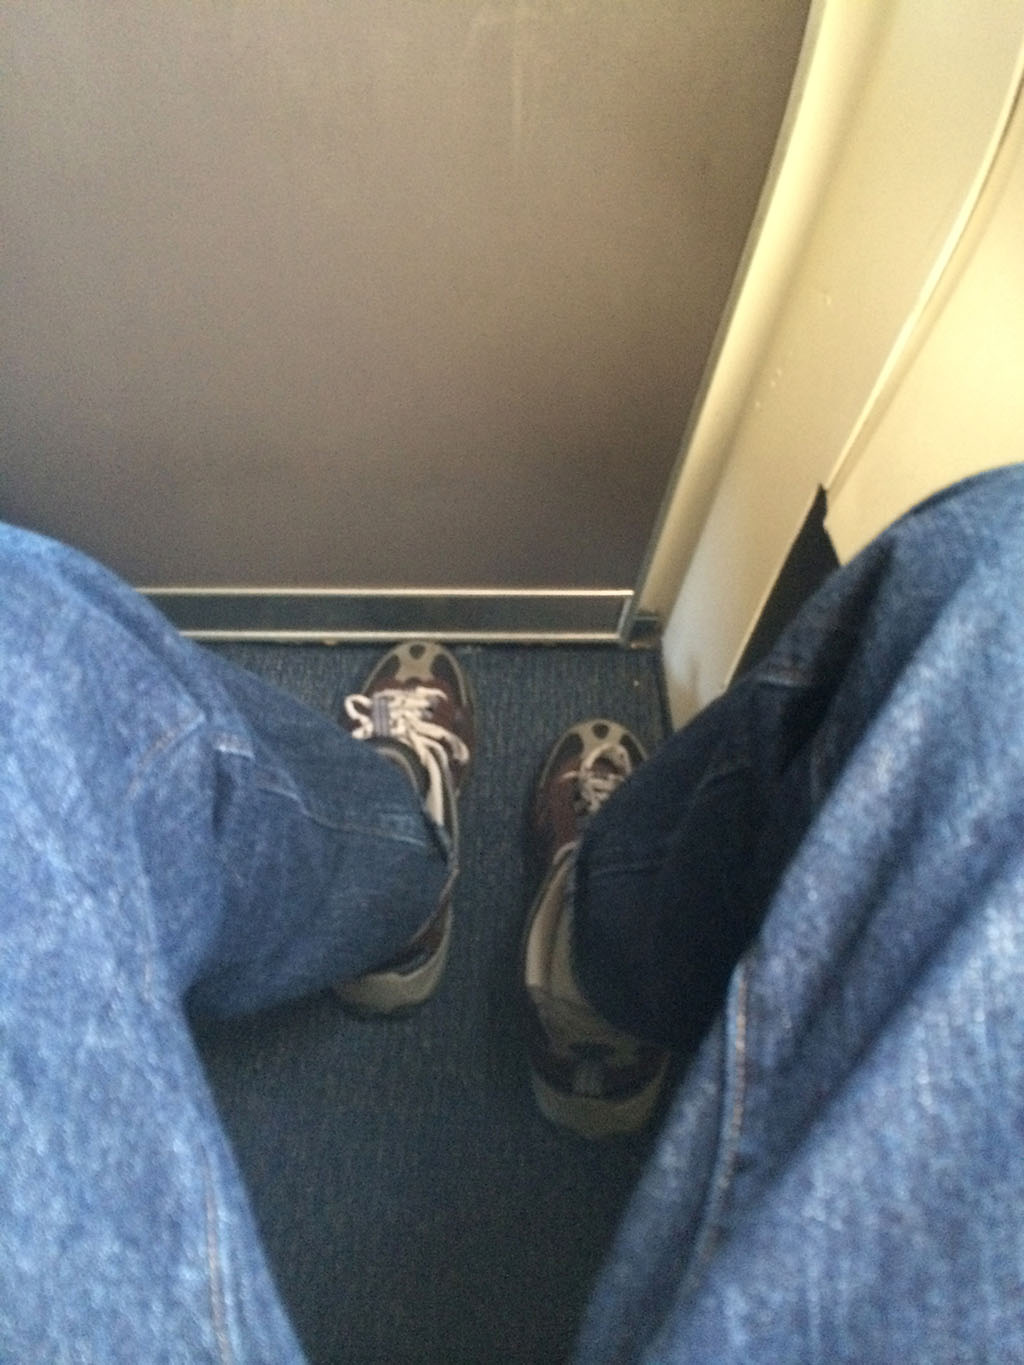 seat 1d leg room on the southwest airlines 737-700